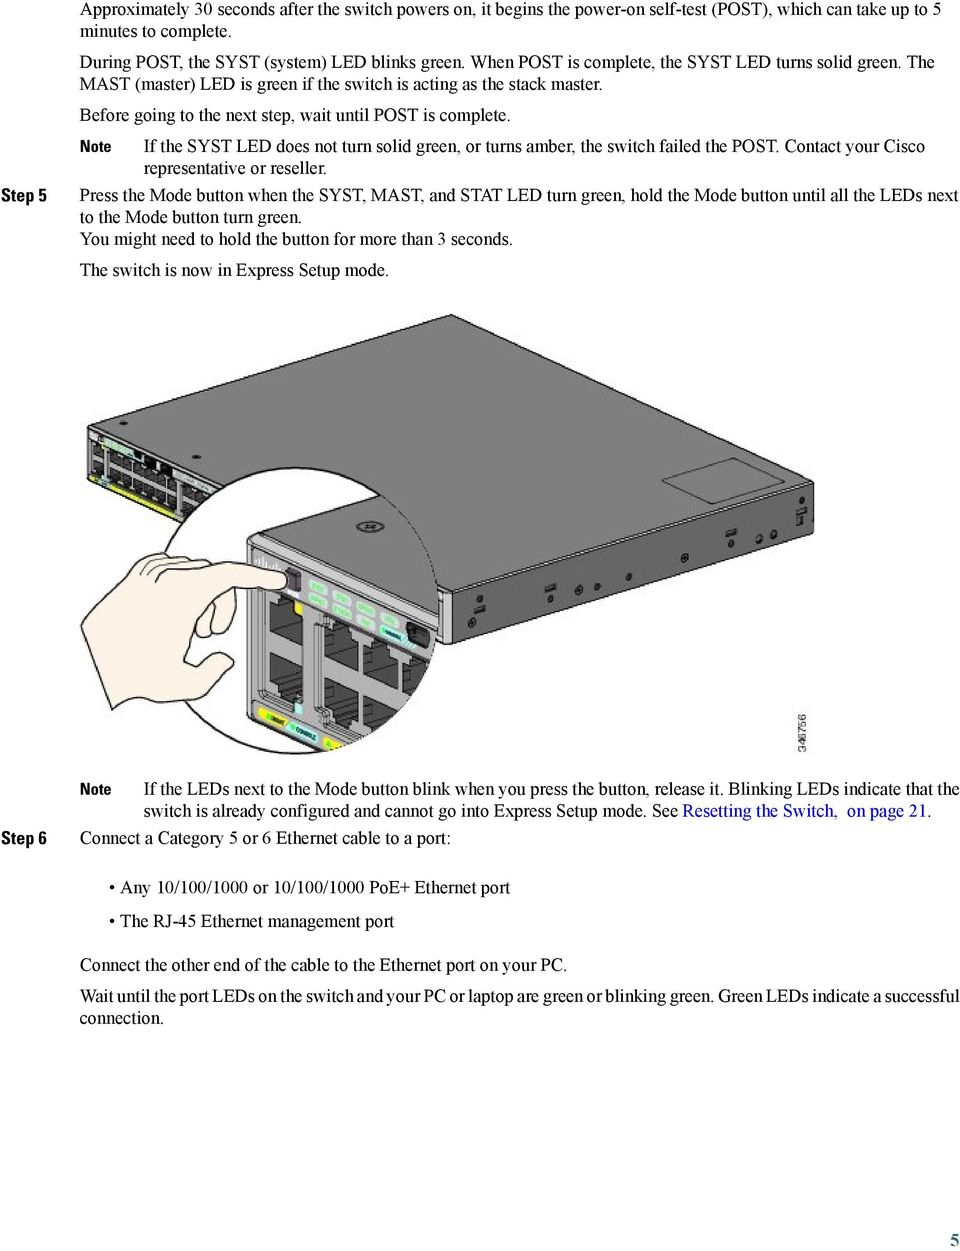 Getting Started Guide For The Catalyst 2960 X And Xr Switches Pdf Cisco Ethernet Cable Wiring Diagram Step 5 If Syst Led Does Not Turn Solid Green Or Turns Amber